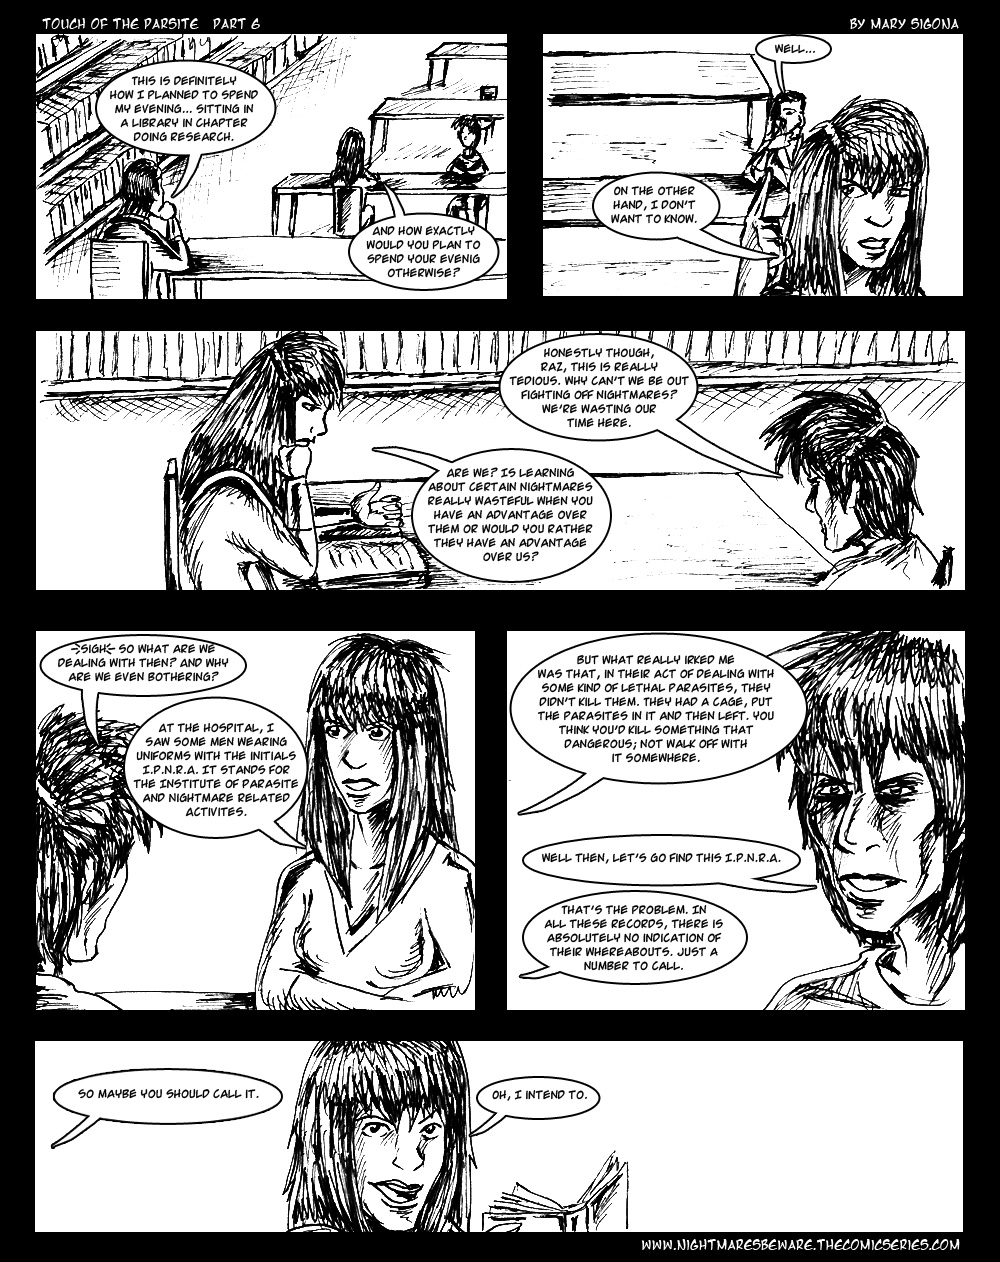 Touch of the Parasite: Part 6